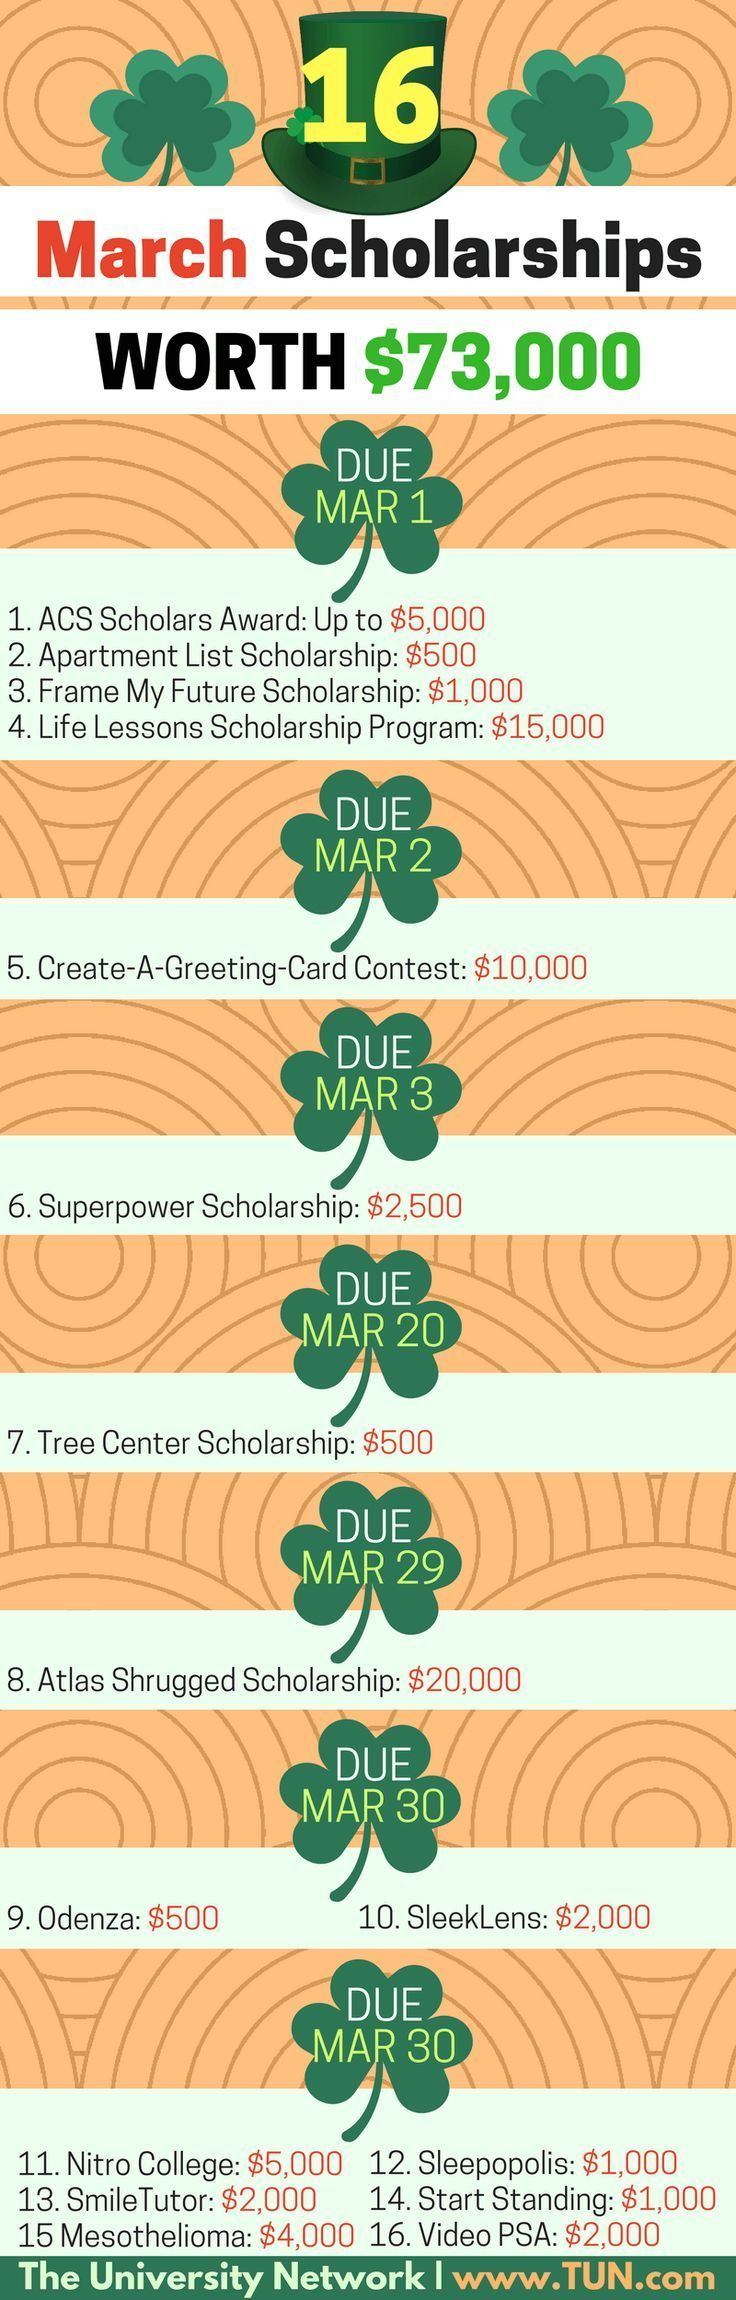 16 scholarships with March deadlines that total $73,000!